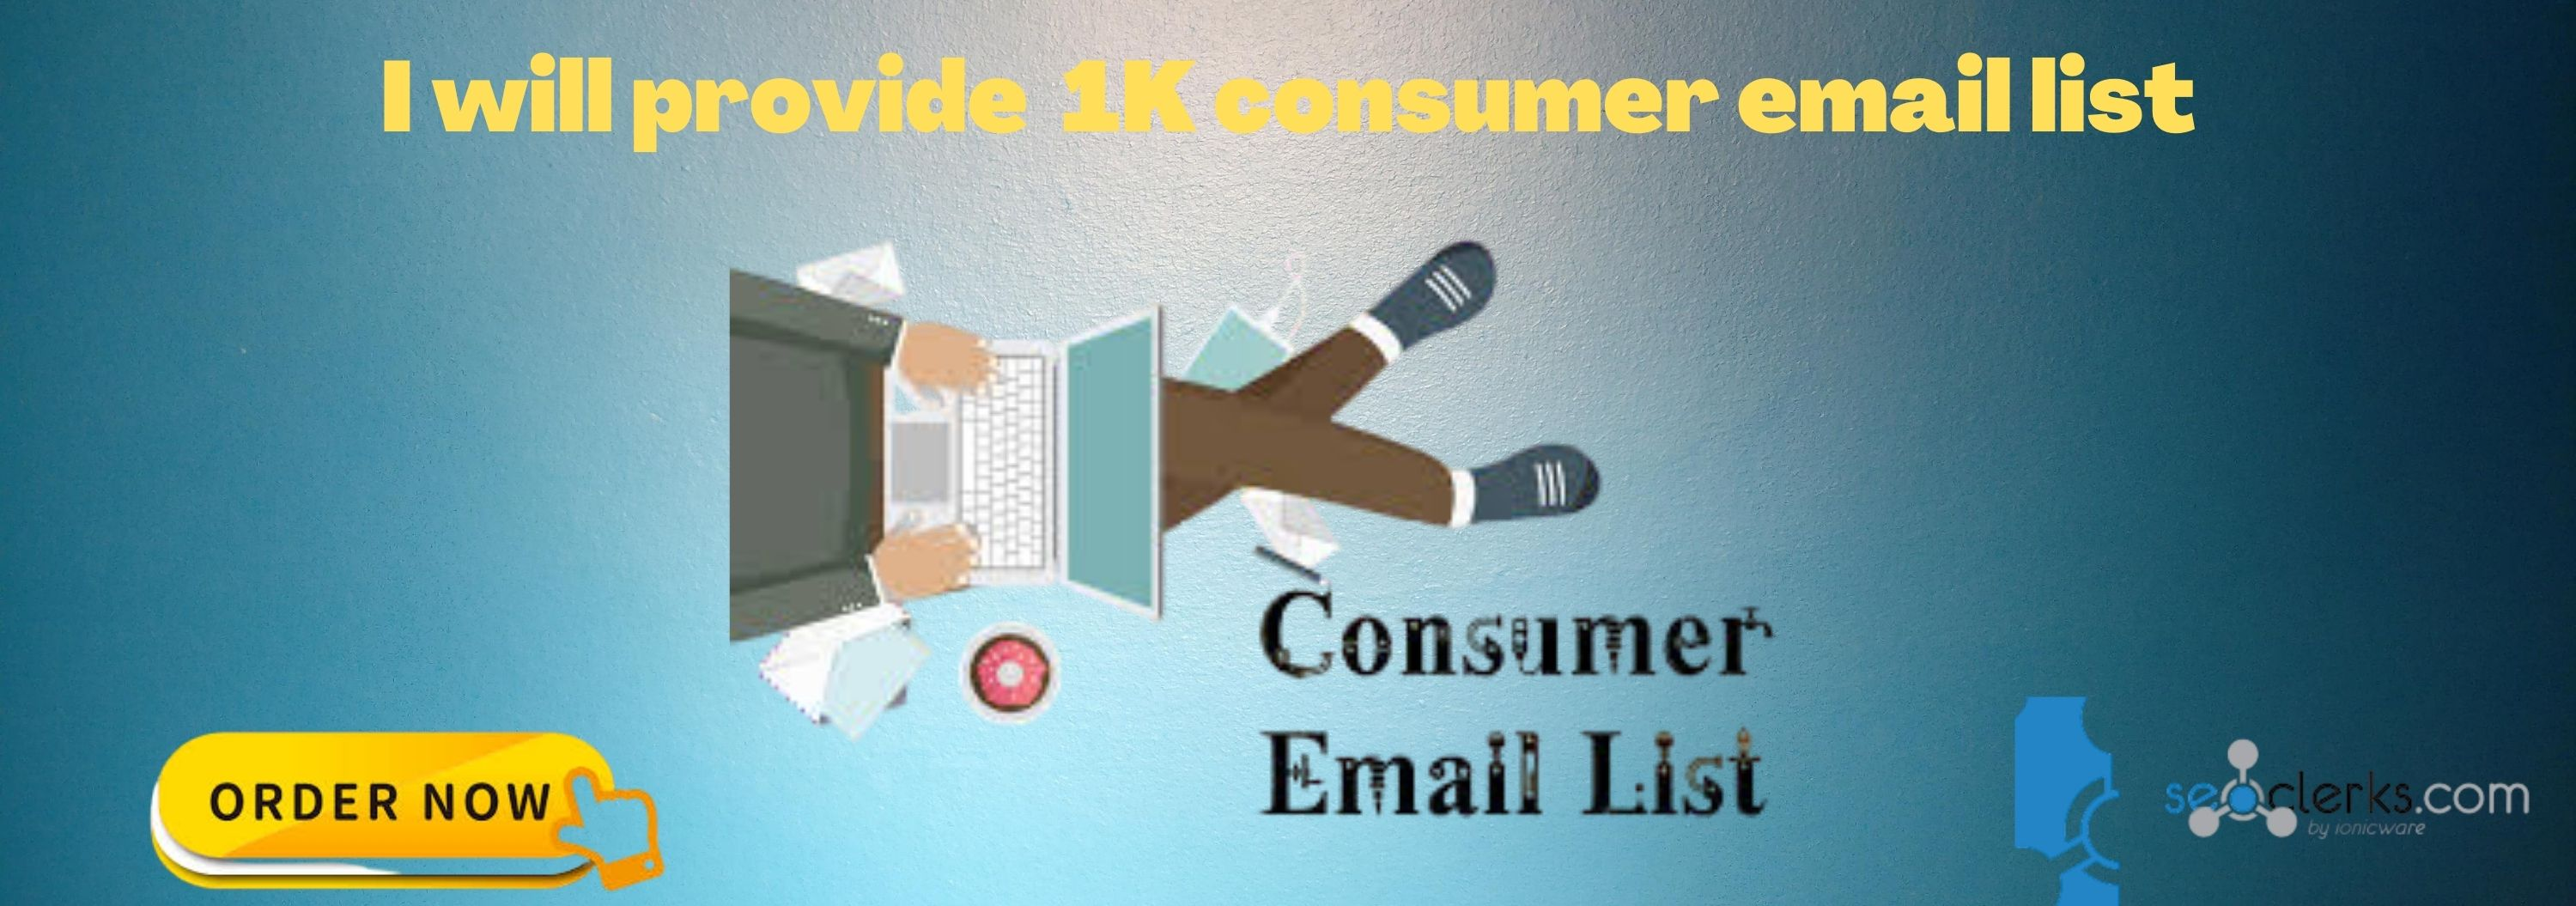 I will provide 1K consumer email list